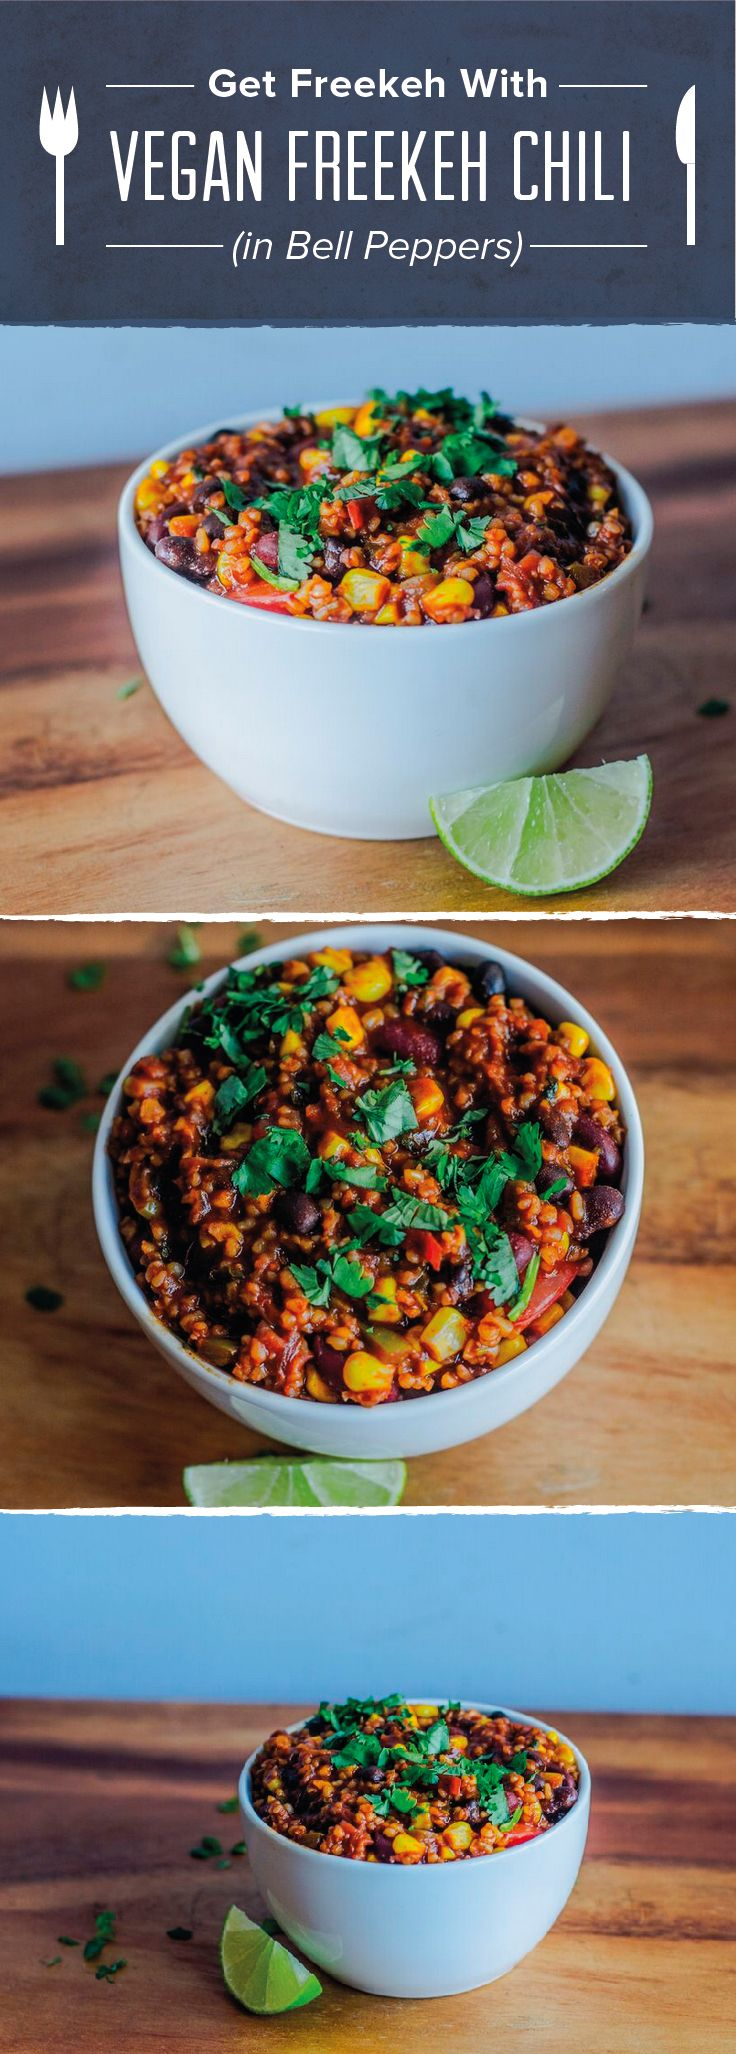 "Two myths to dispel:  1. As a meat eater, you can actually find a lot of inspiration from vegan meals since you can simply add your choice of ""animal"" protein if desired. 2. You CAN build muscle and lose weight on a vegan diet.   Here is one of my new favorite recipes, just in time for the cold weather – vegan chili with freekeh. #fitmencook #fitwomencook #vegan #chili #healthy #cleaneating"